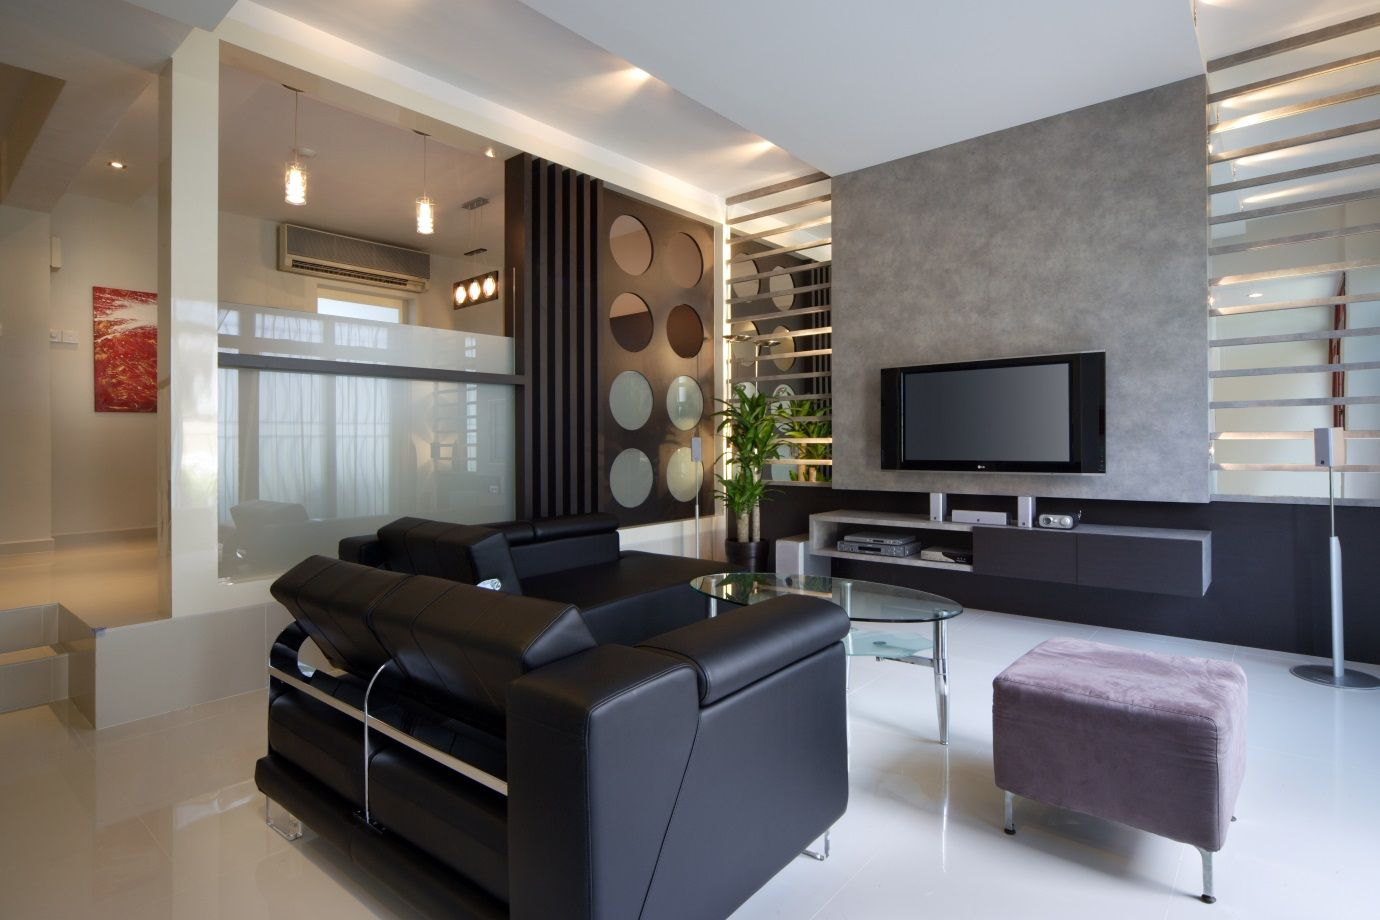 Living Room Designs Singapore 50 shades of grey | 50 shades, gray and living rooms